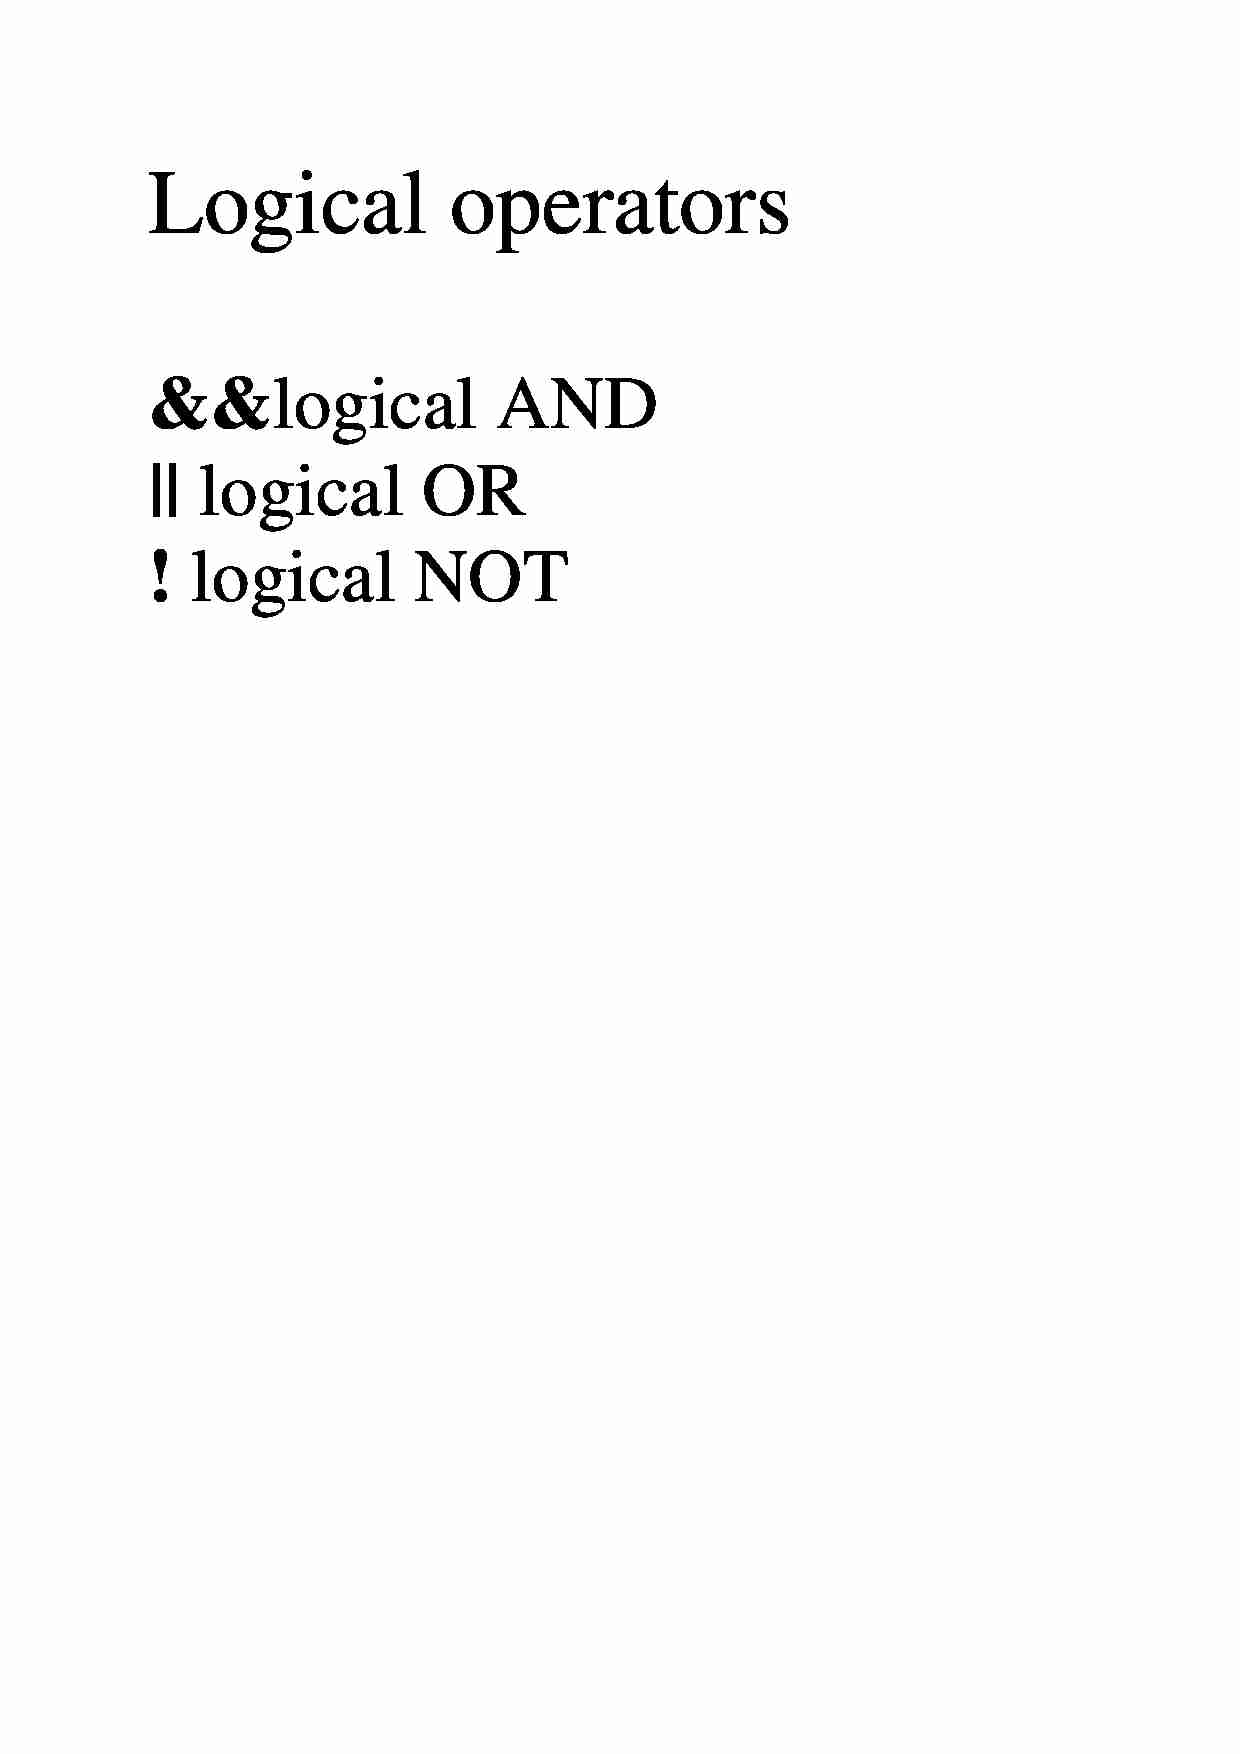 Logical operators  - overview - strona 1